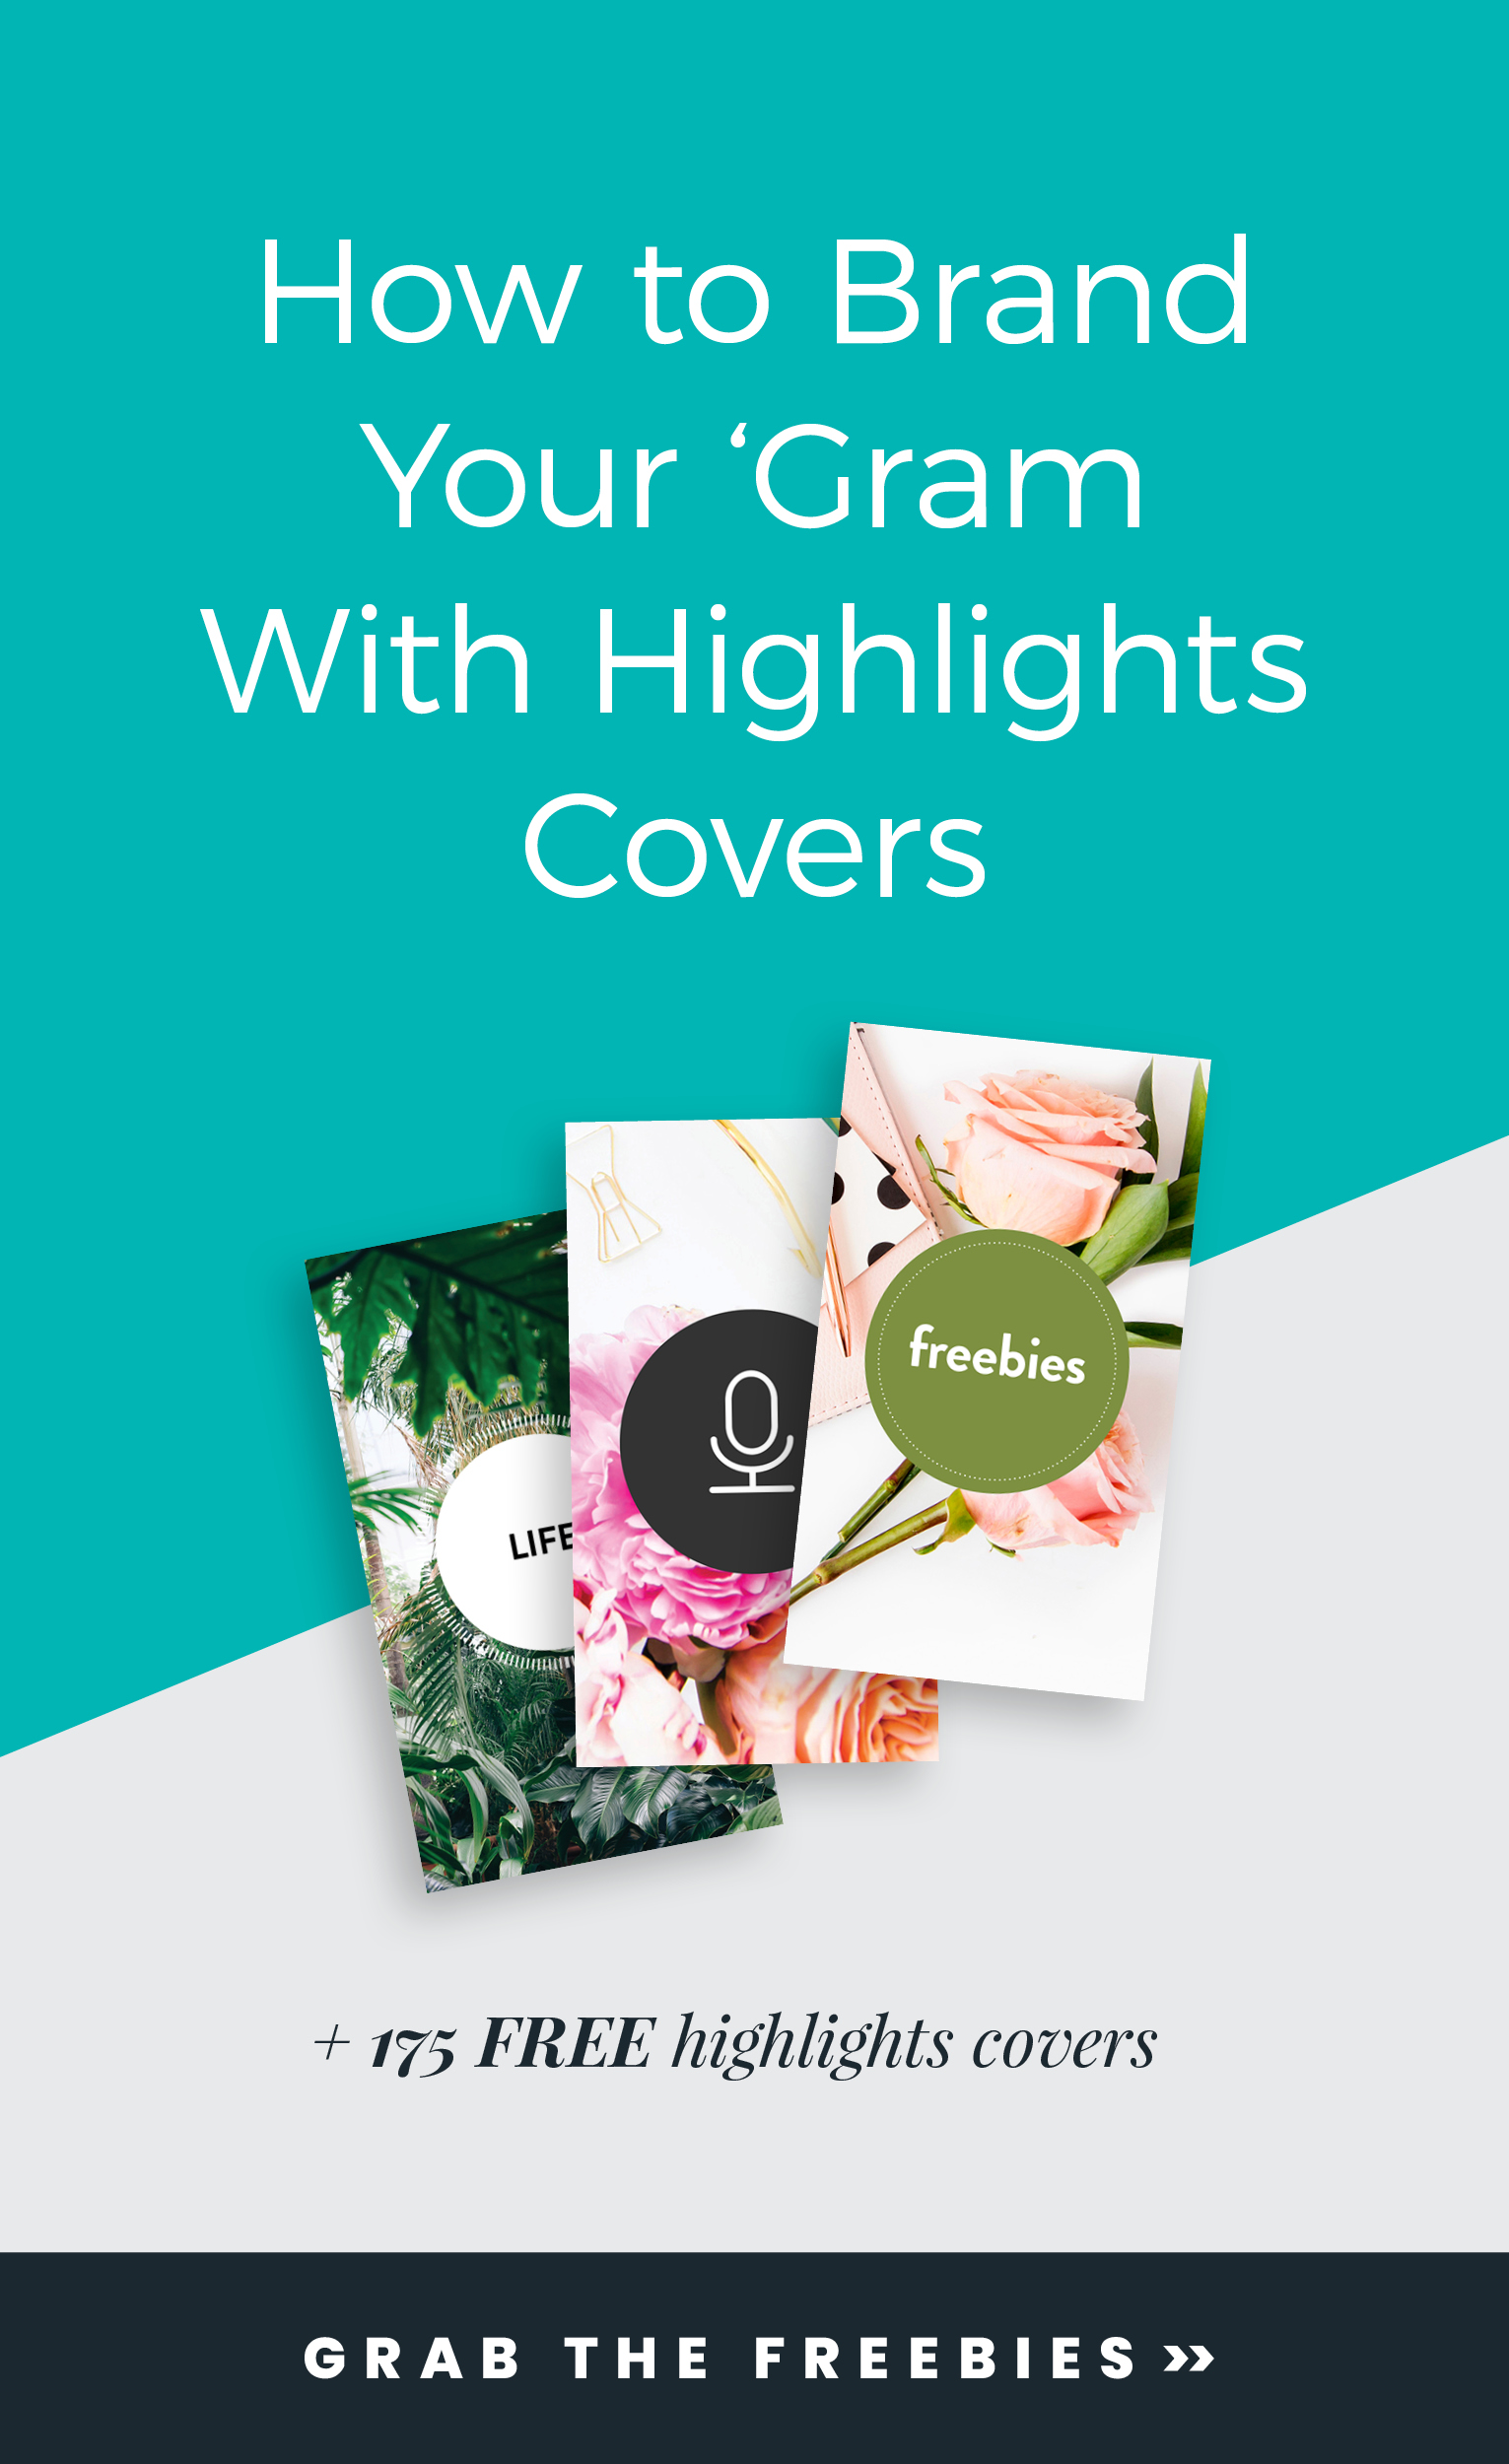 how-to-brand-your-instagram-with-highlights-covers.jpg